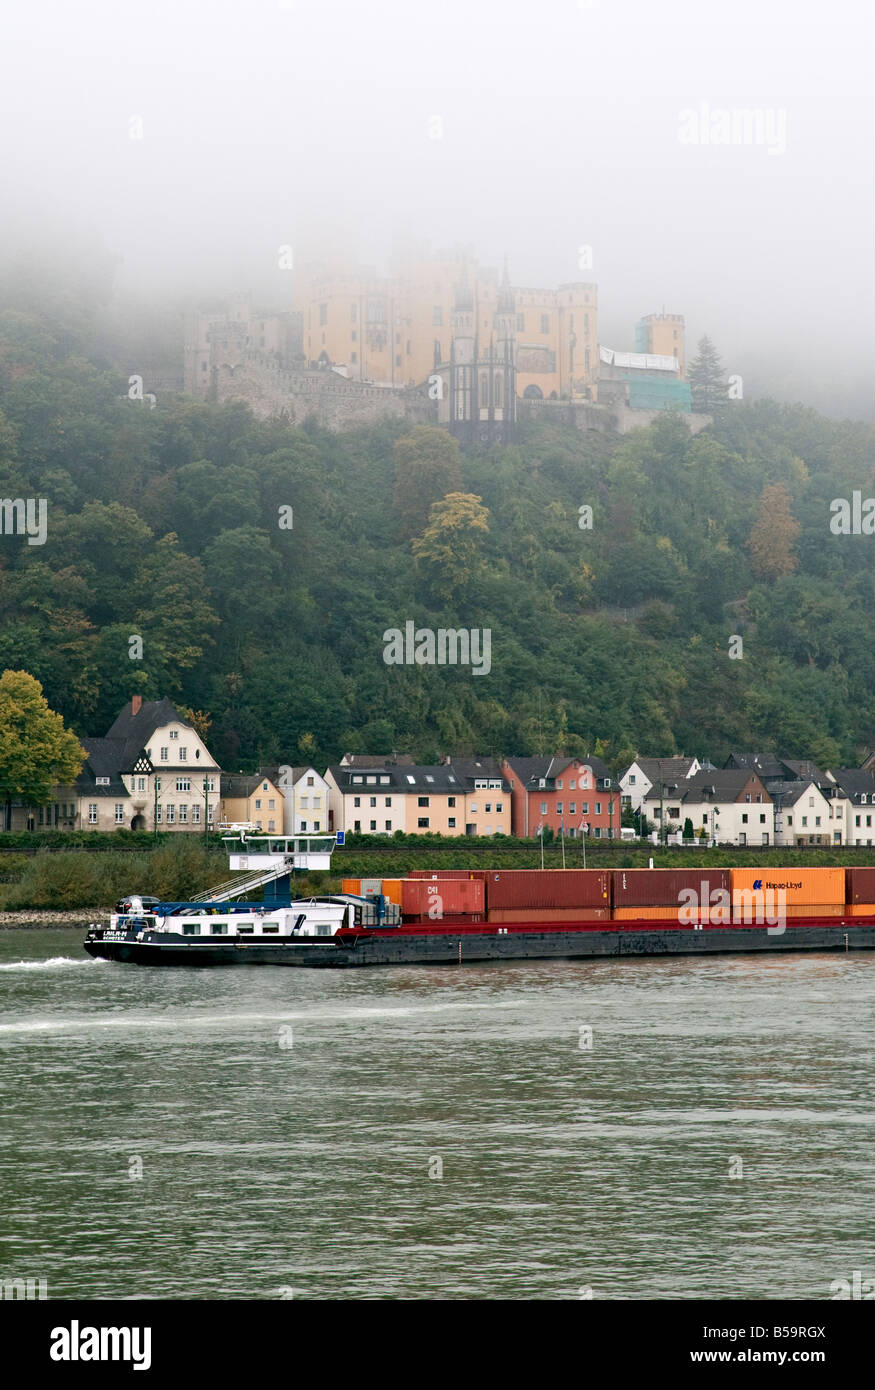 Stolzenfels Castle and the Rhine on a foggy morning. - Stock Image